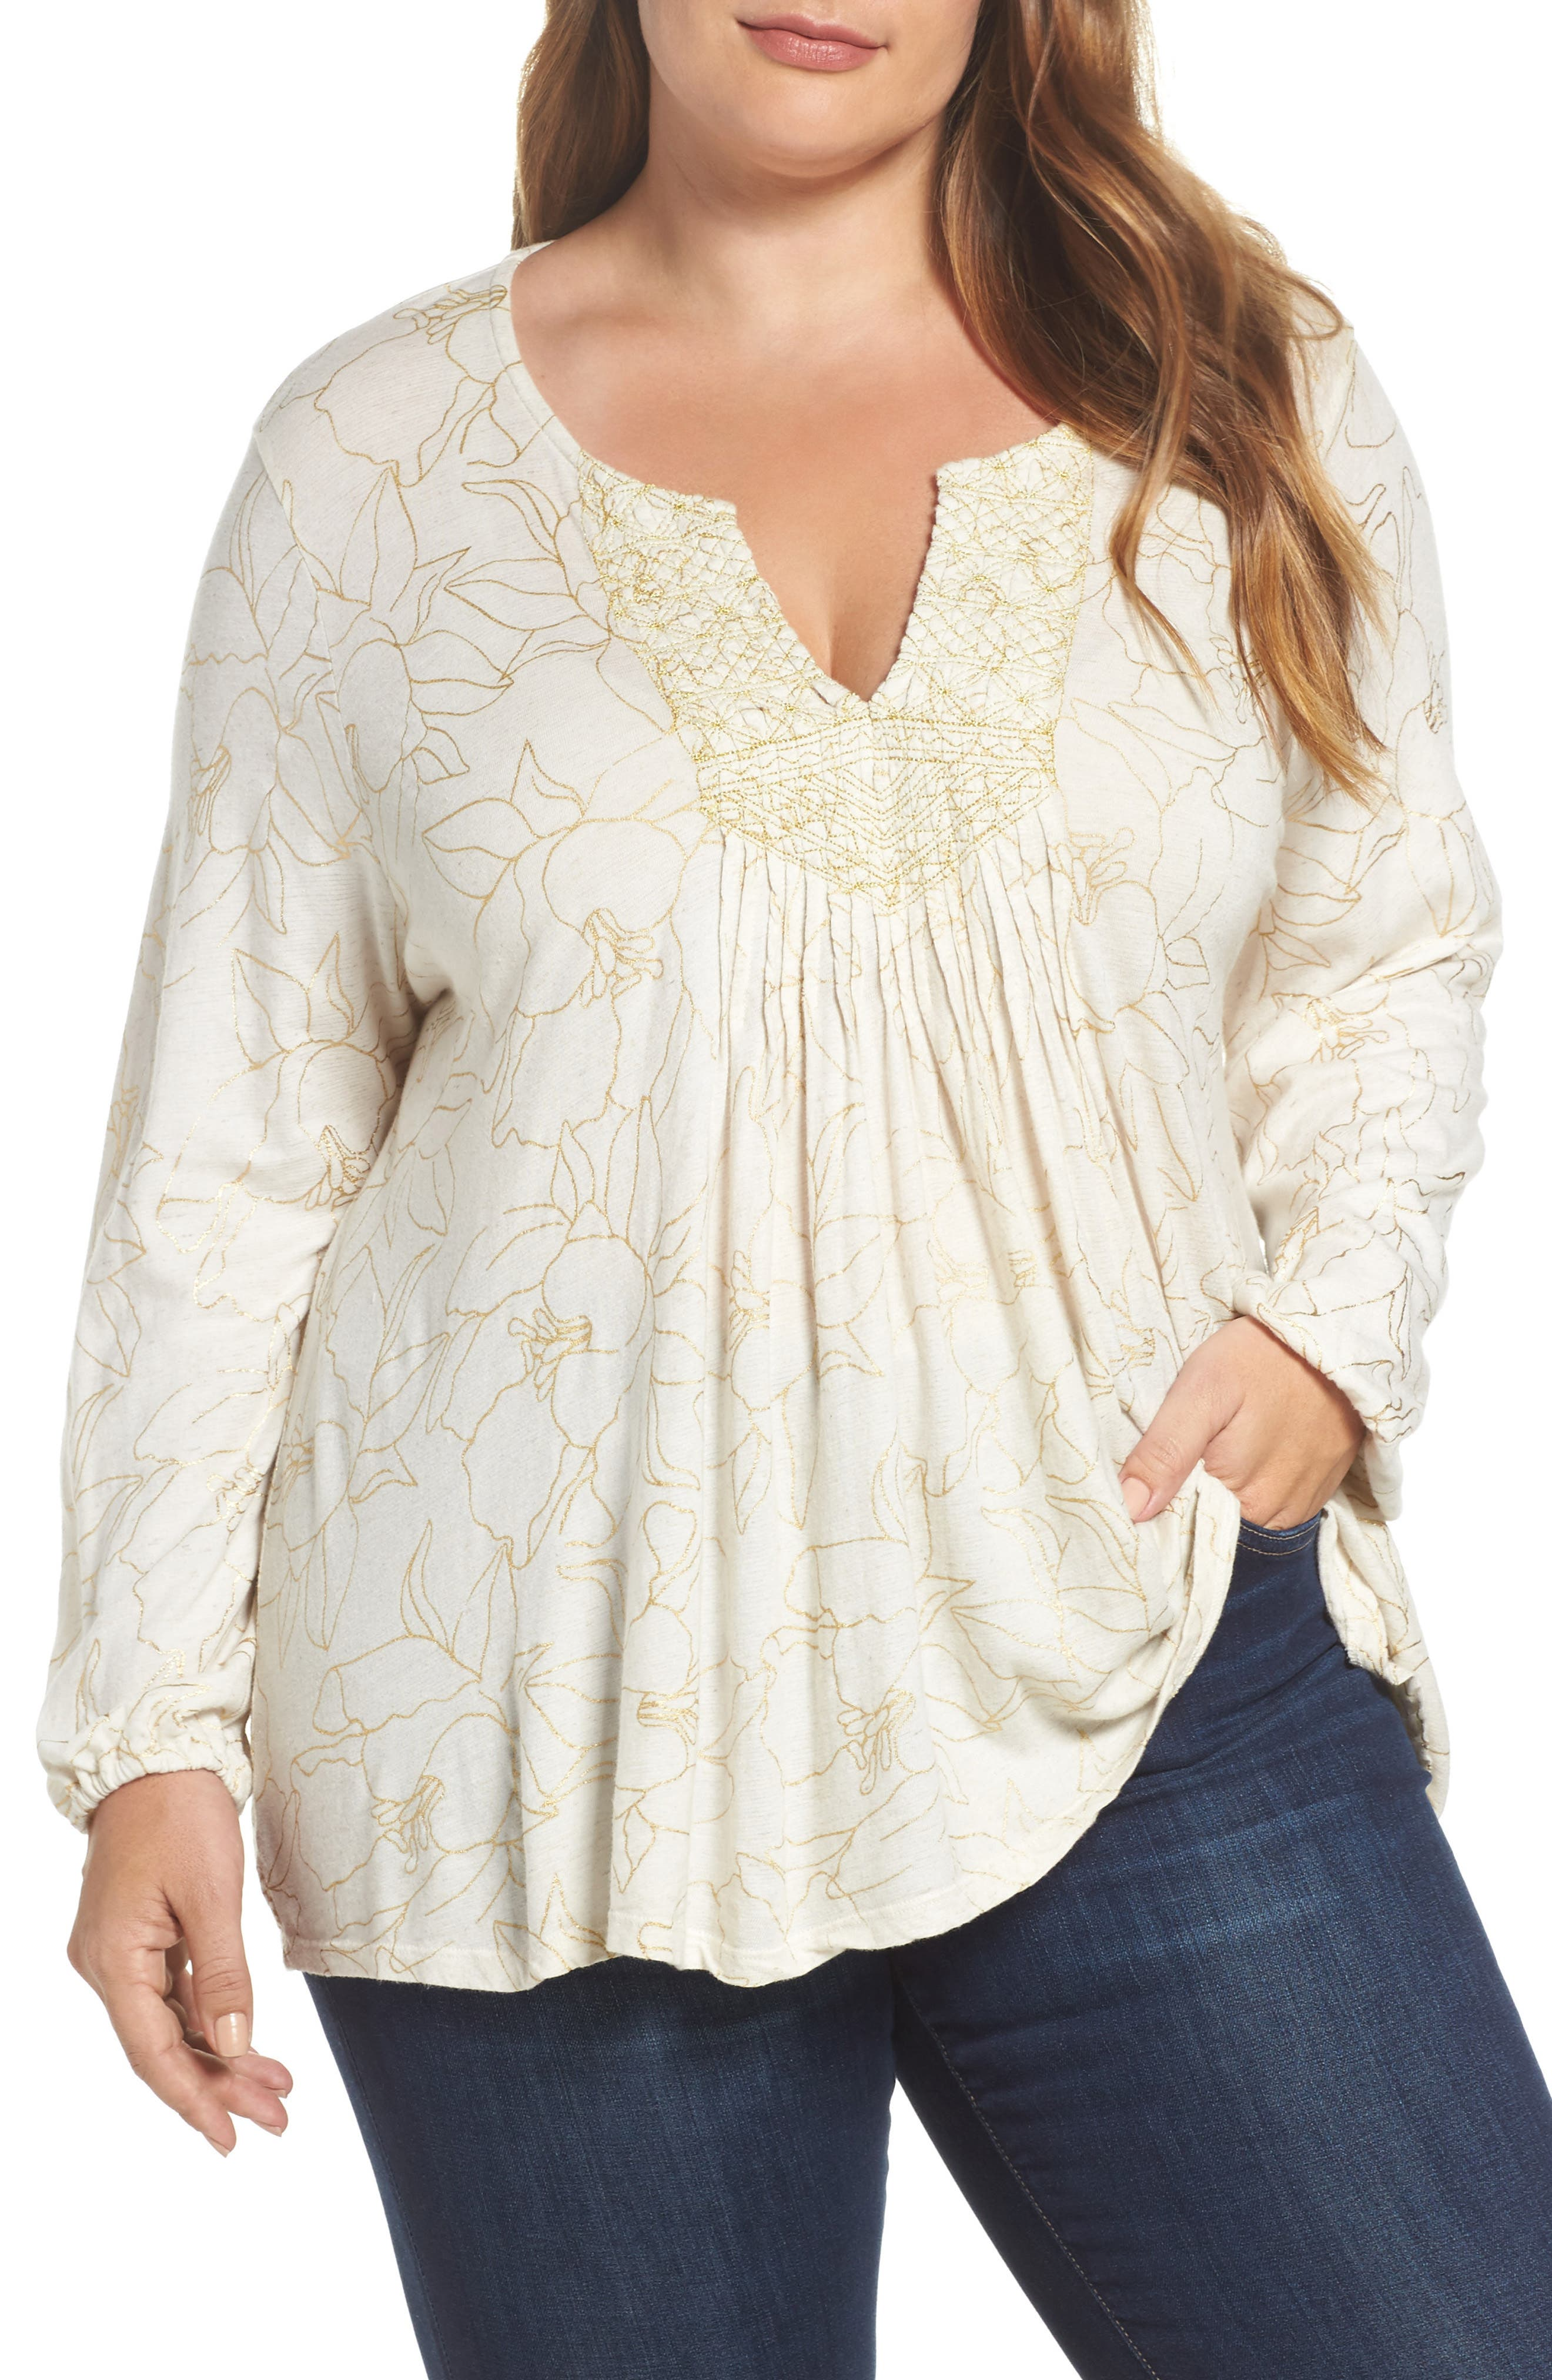 Alternate Image 1 Selected - Lucky Brand Embroidered Foil Print Top (Plus Size)